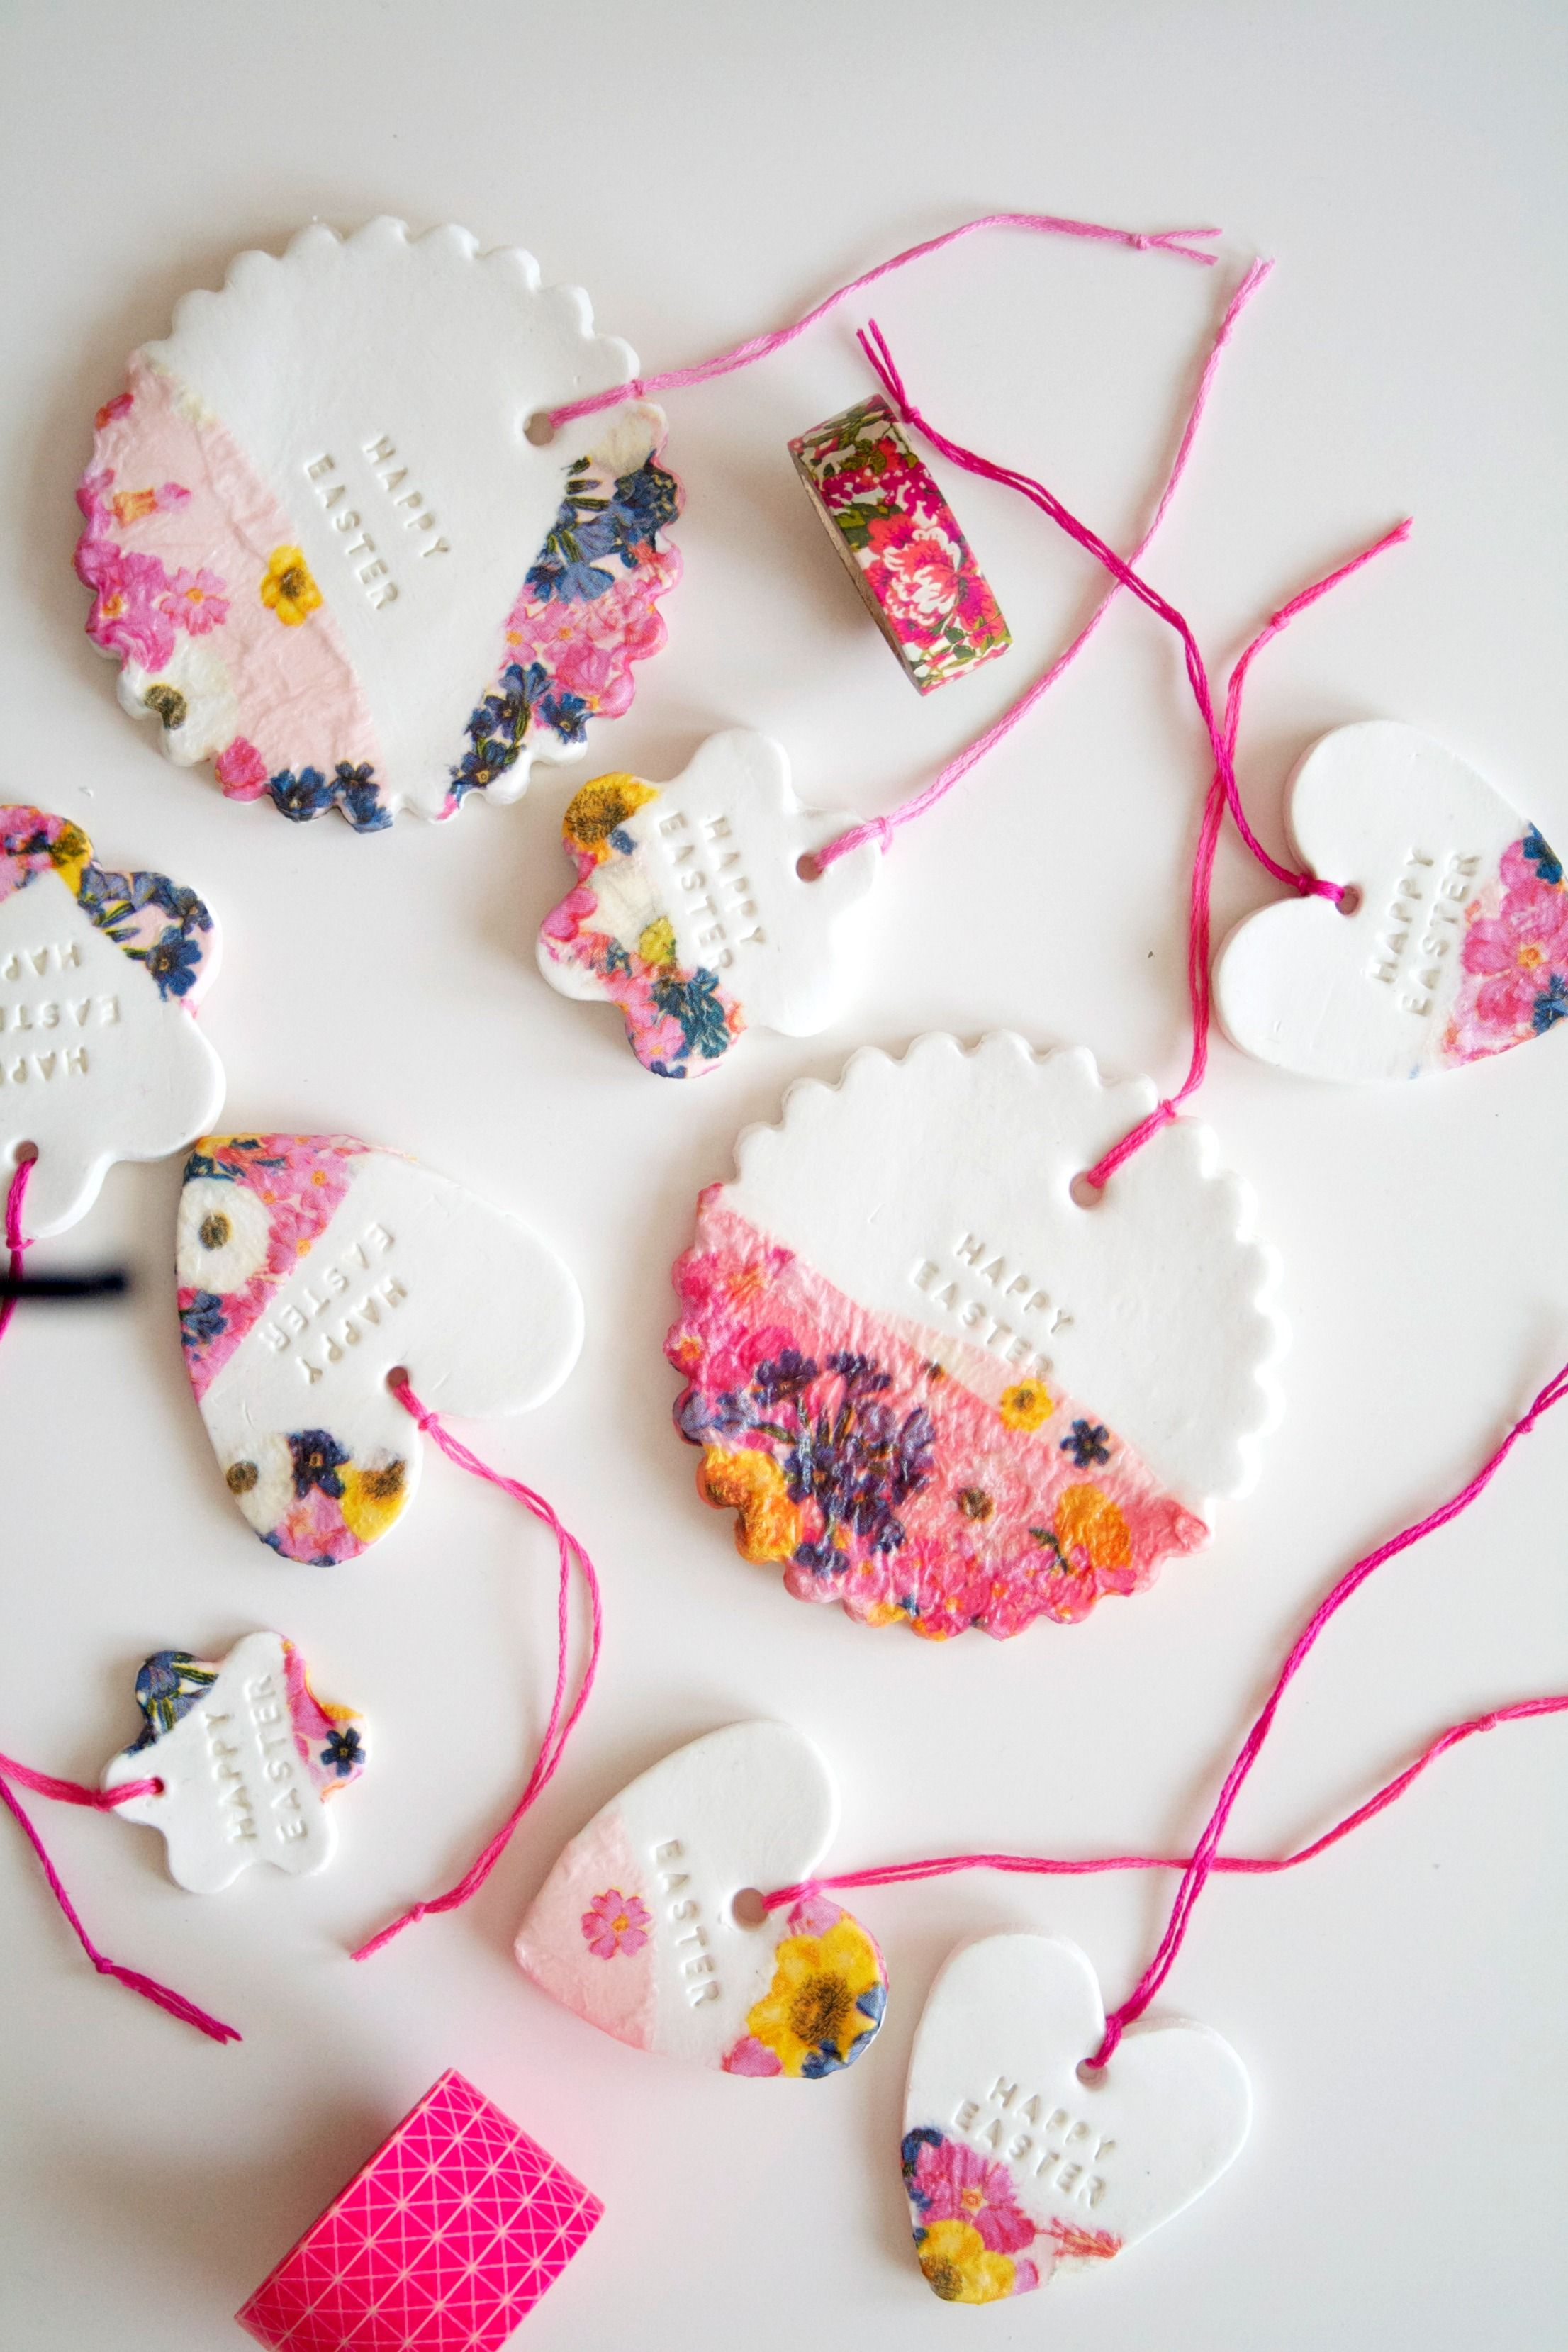 Diy Easter Diy Clay Ornaments 7 Other Inspirations Easter Diy Clay Ornaments Diy Clay